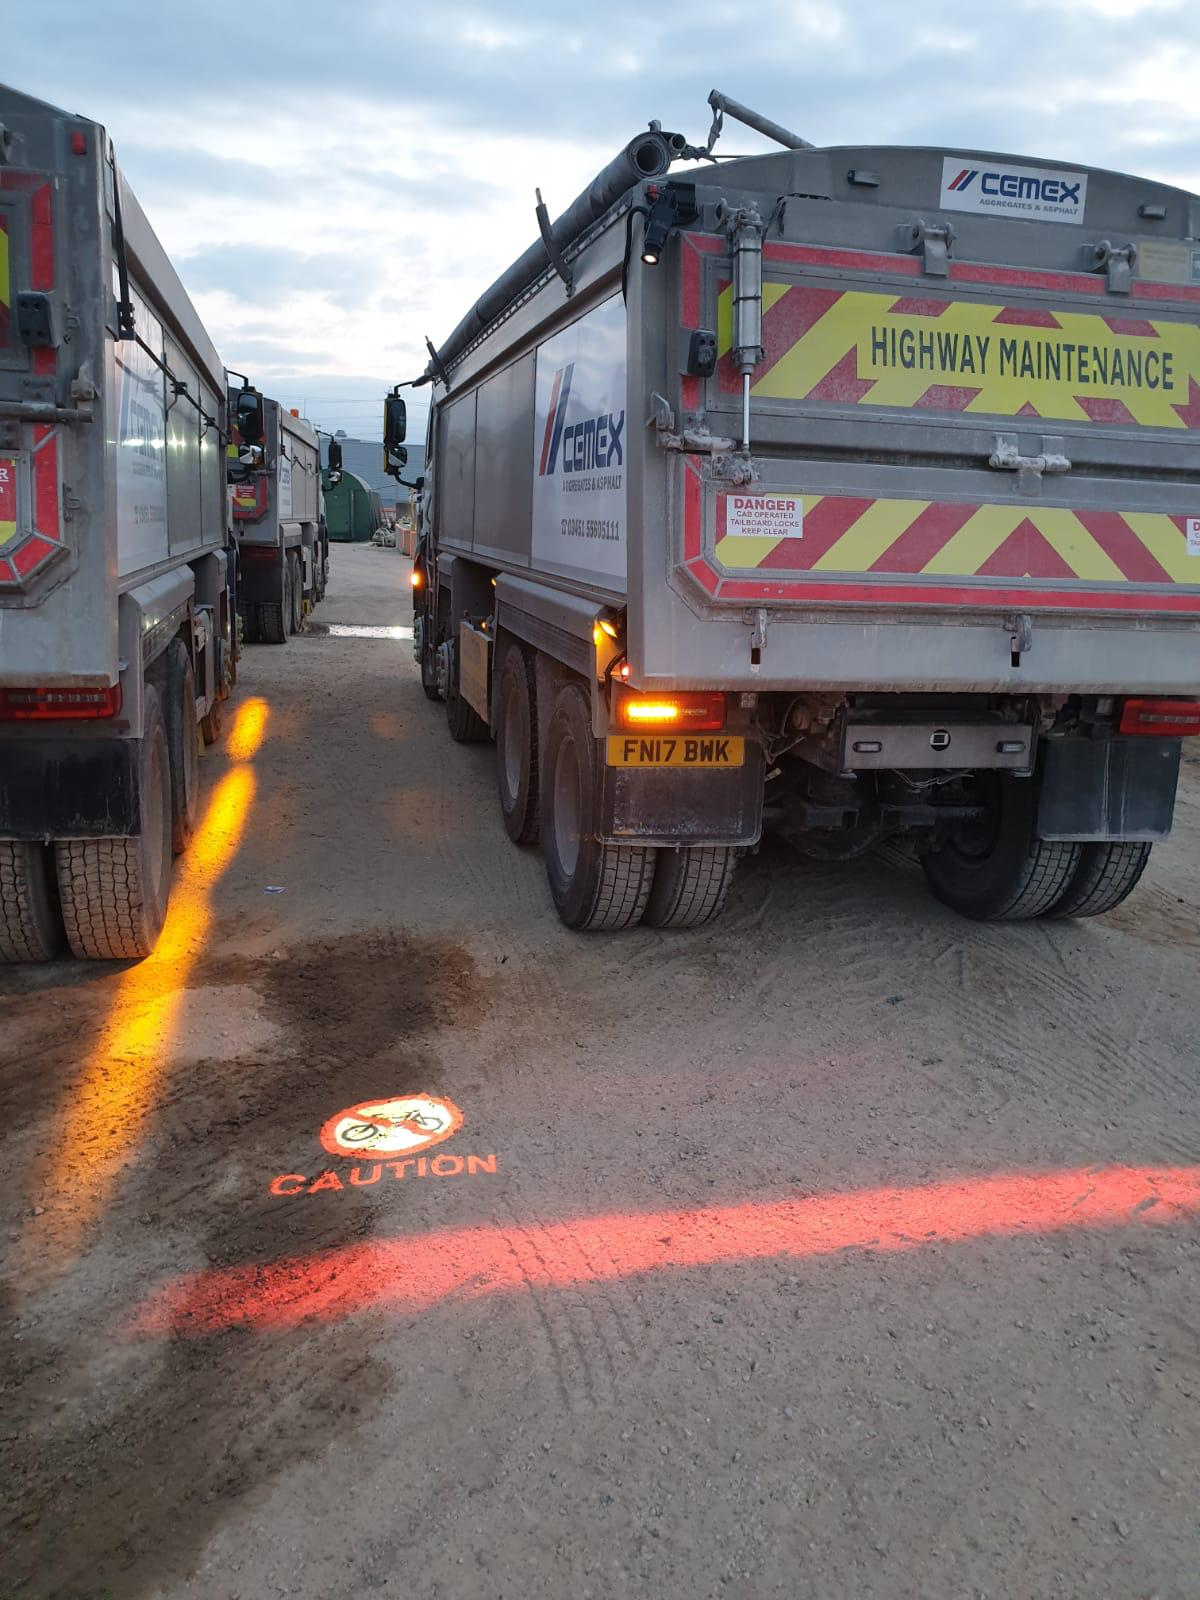 FHOSS launches new Cycle Lane  safety product with CEMEX